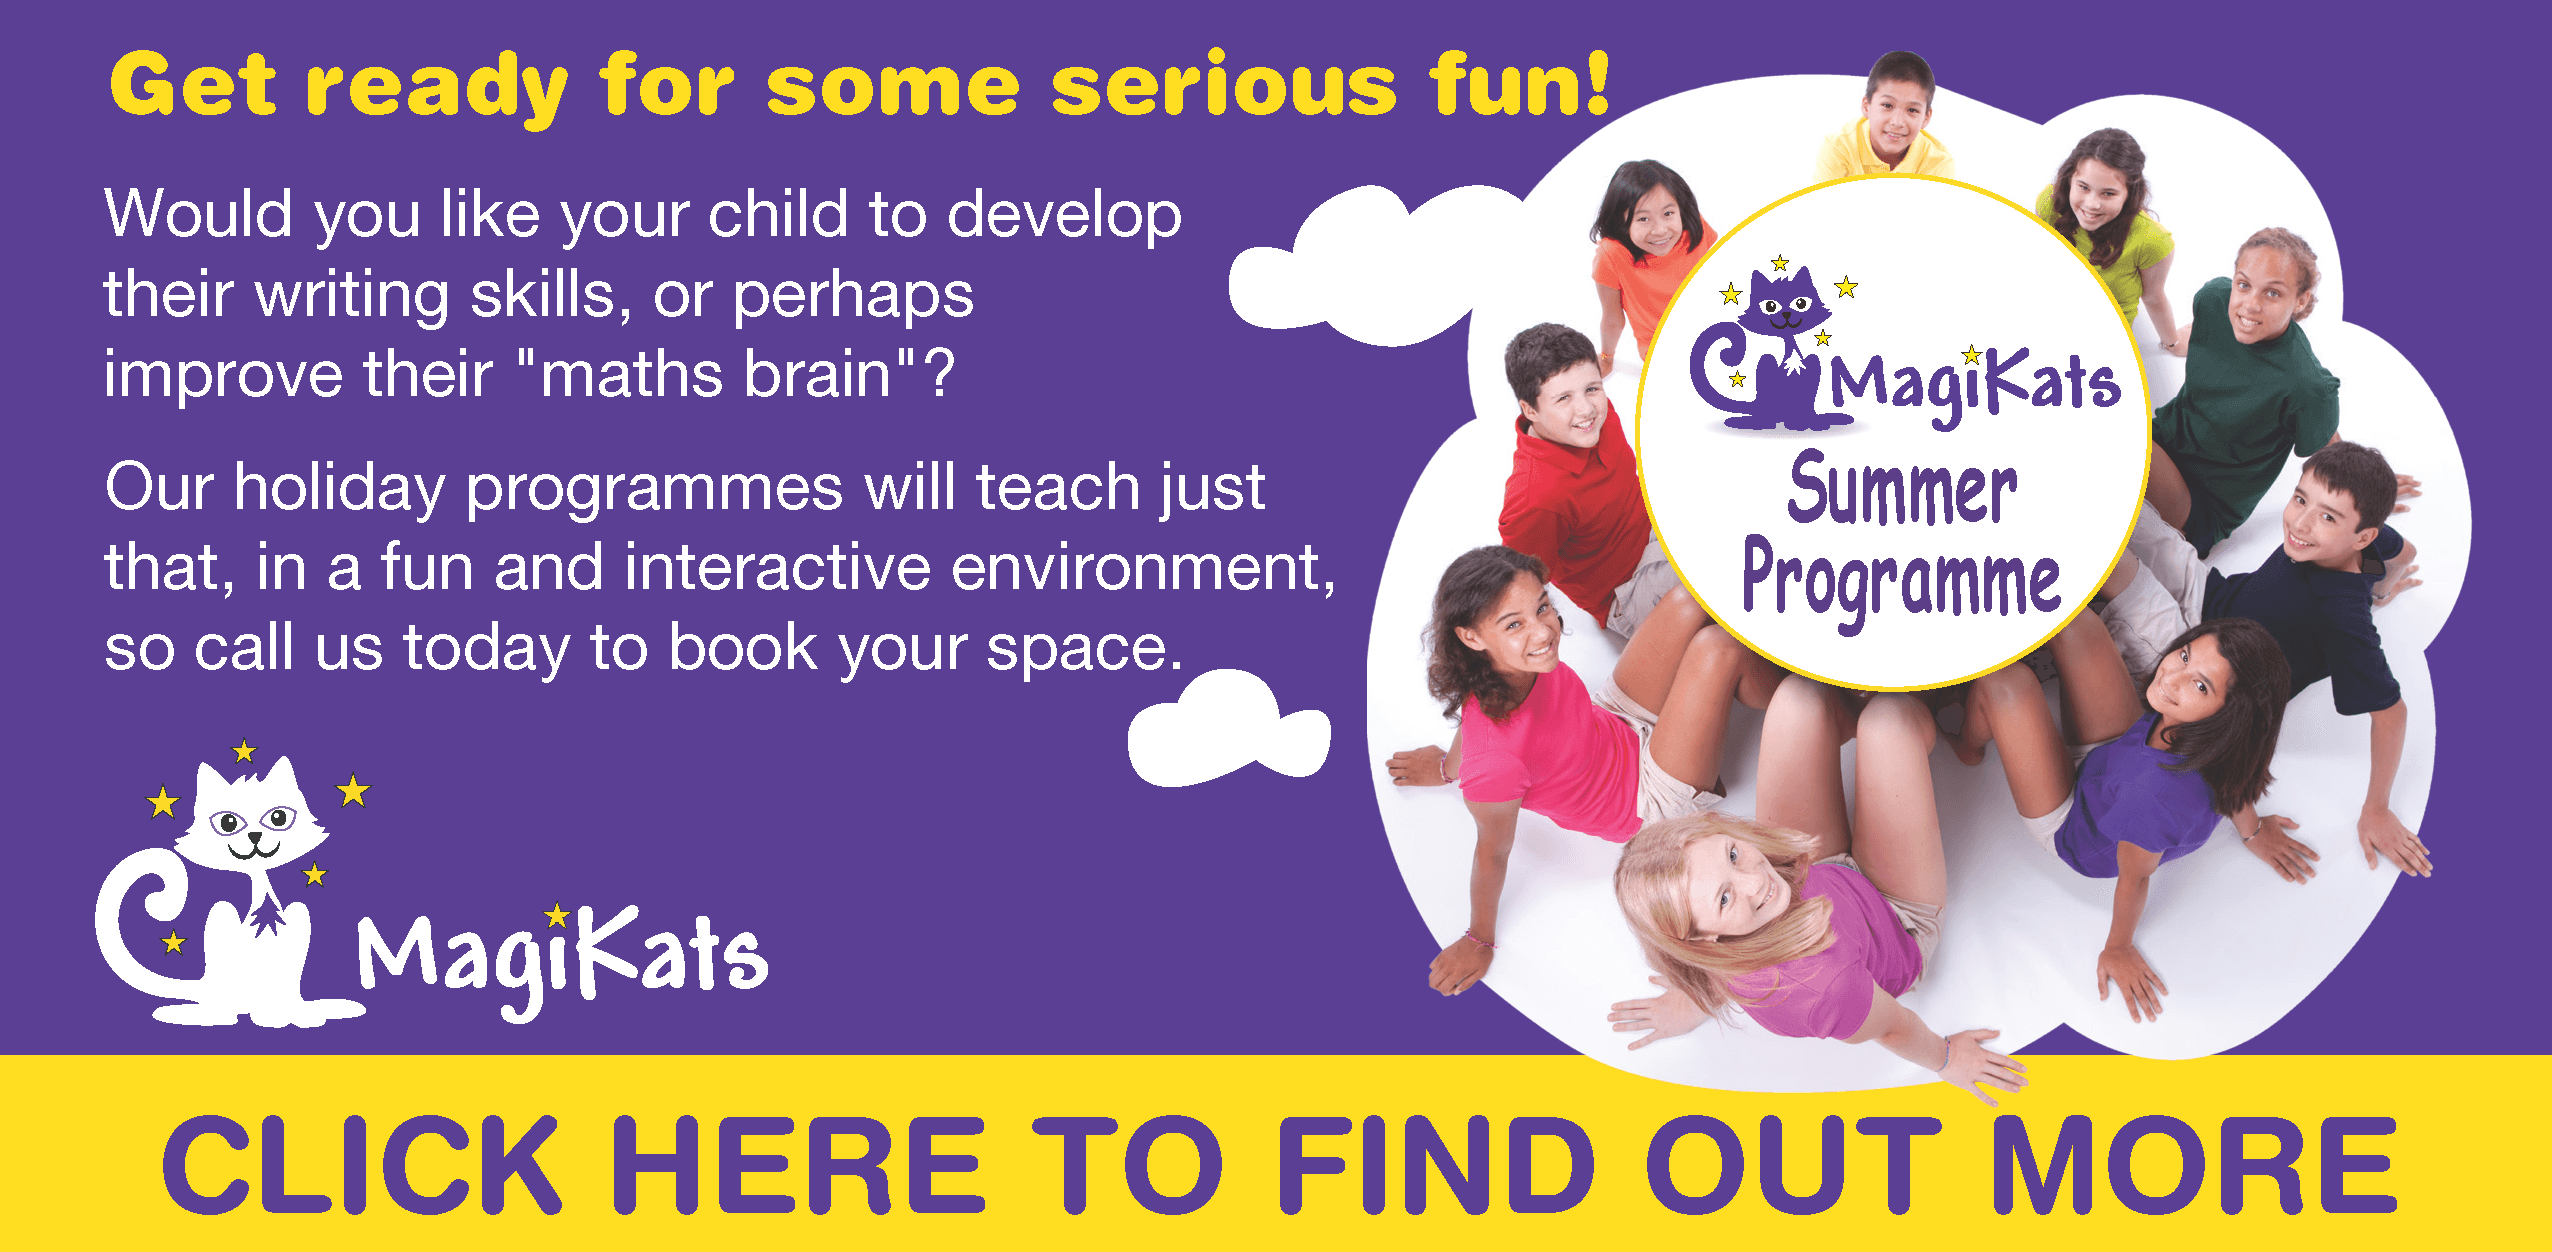 Summer Programmes now available!